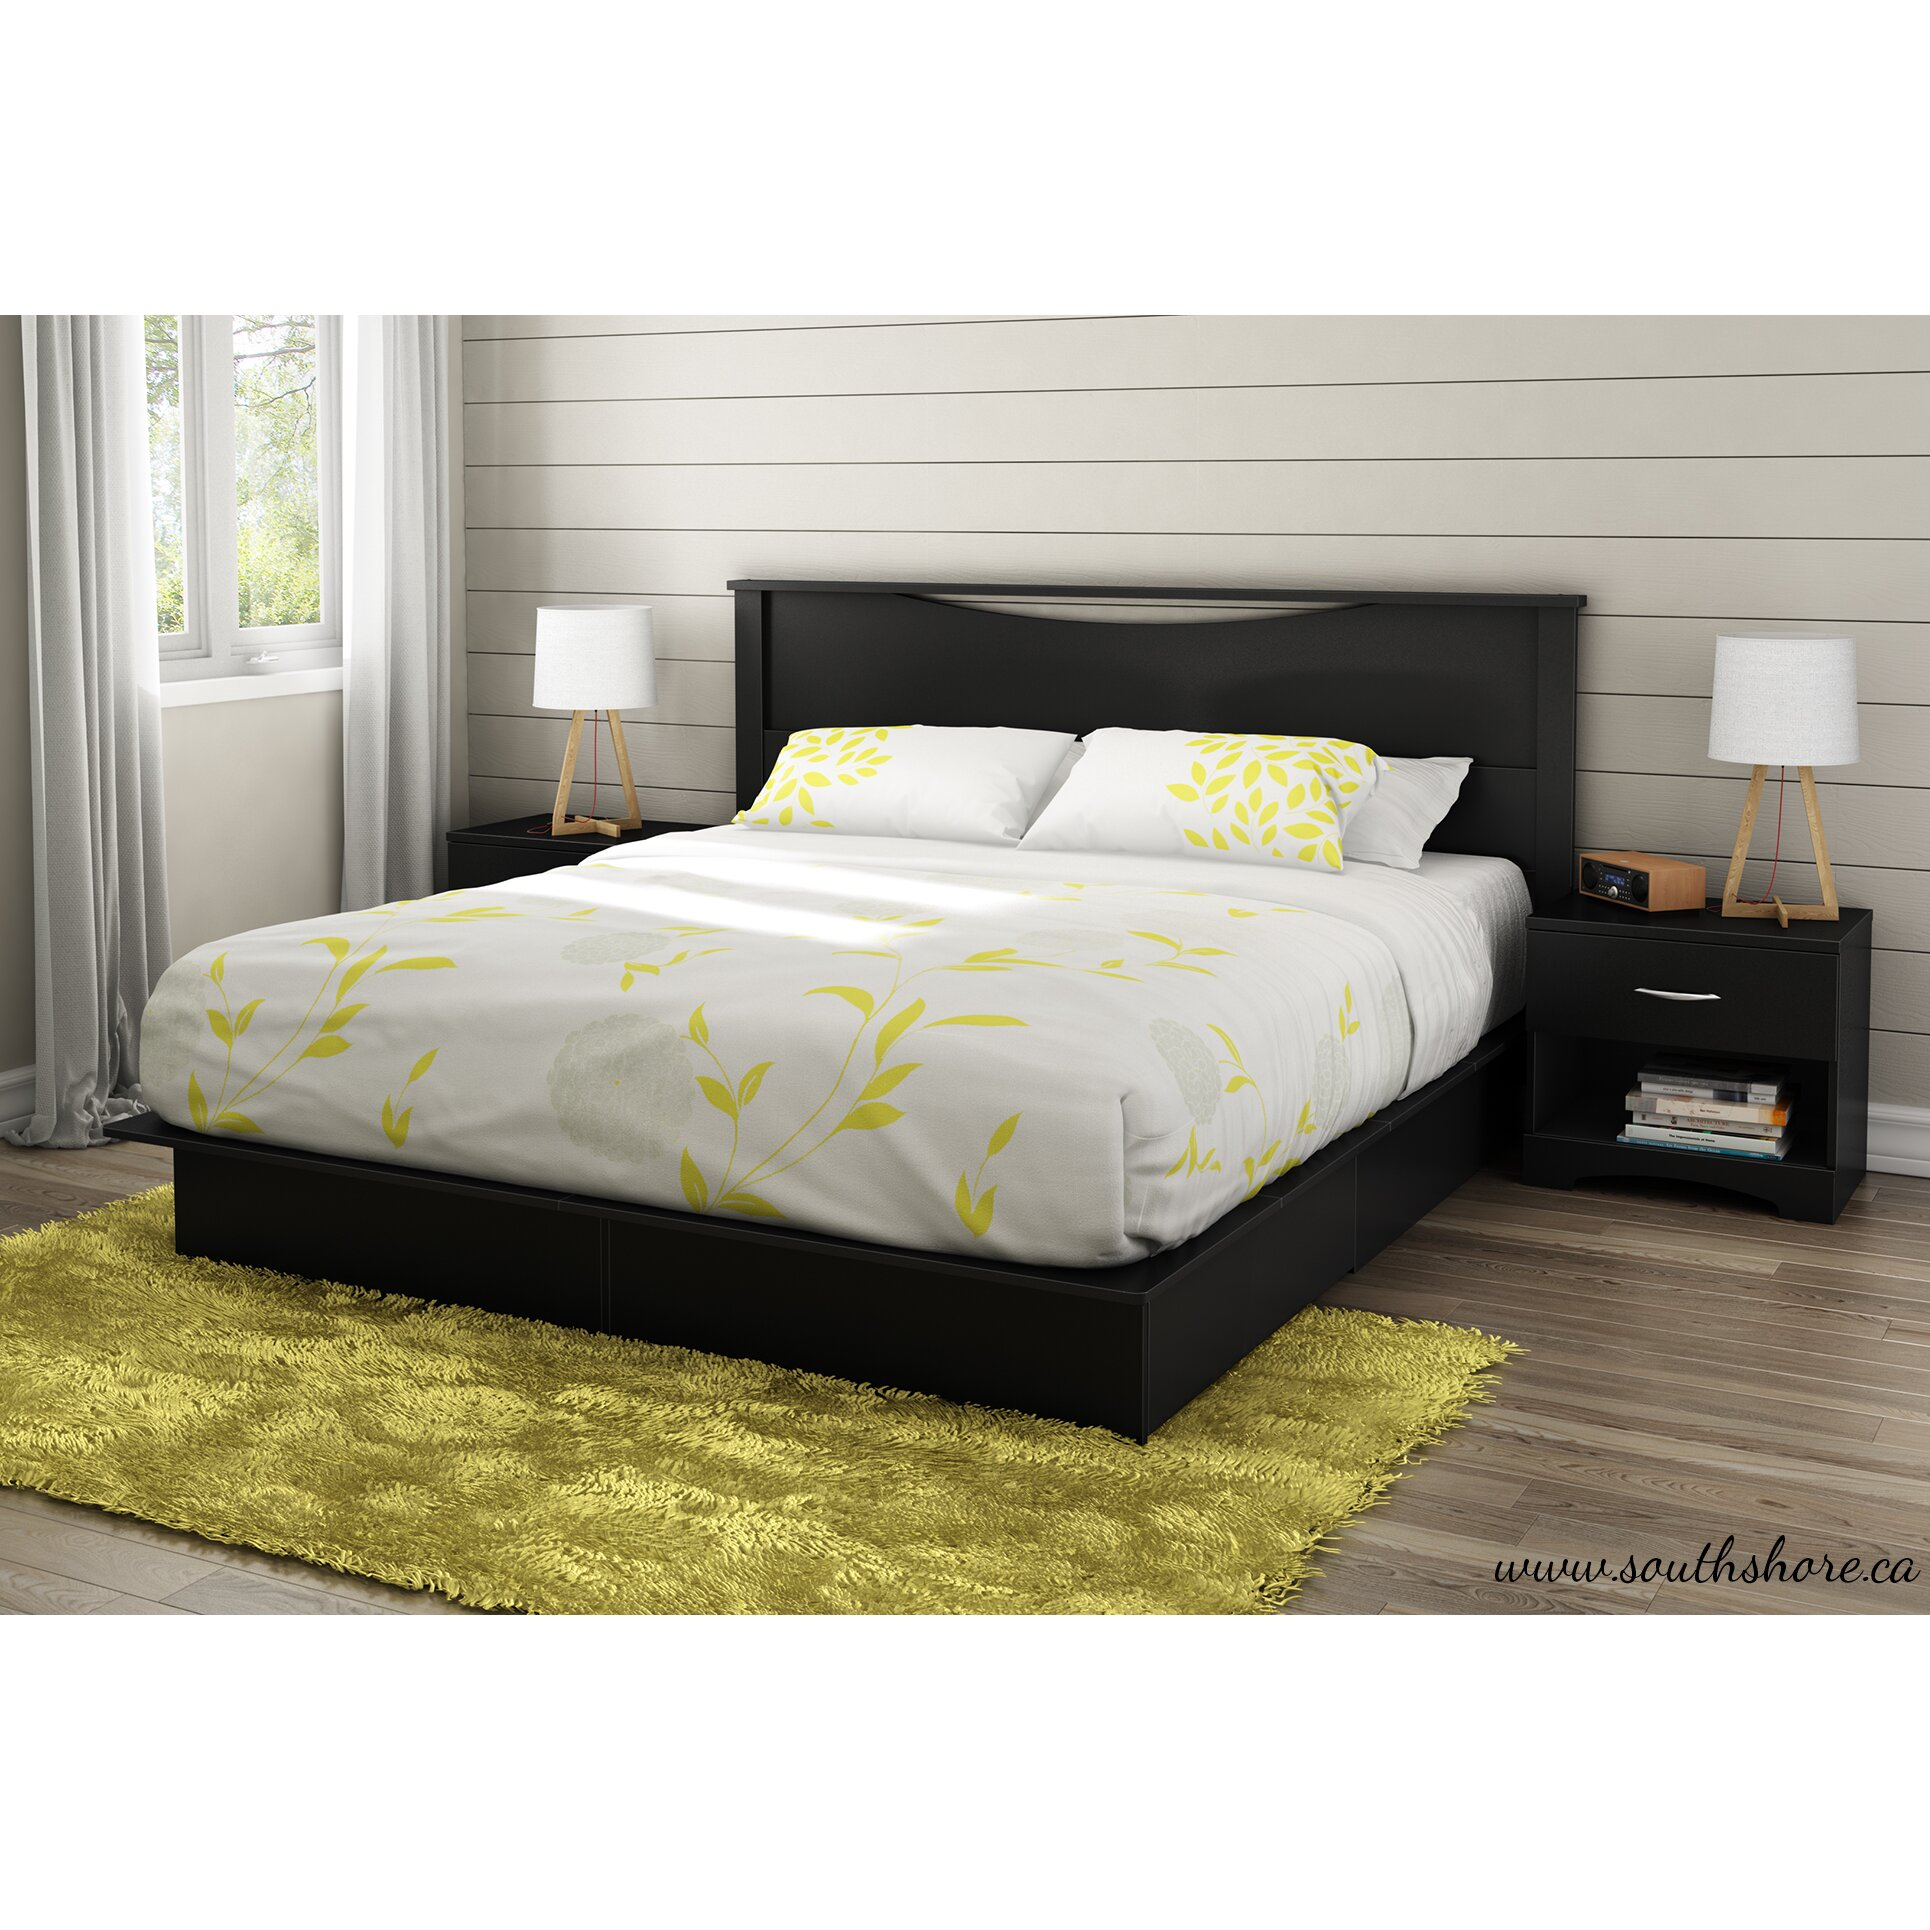 South Shore Platform Bed With Storage